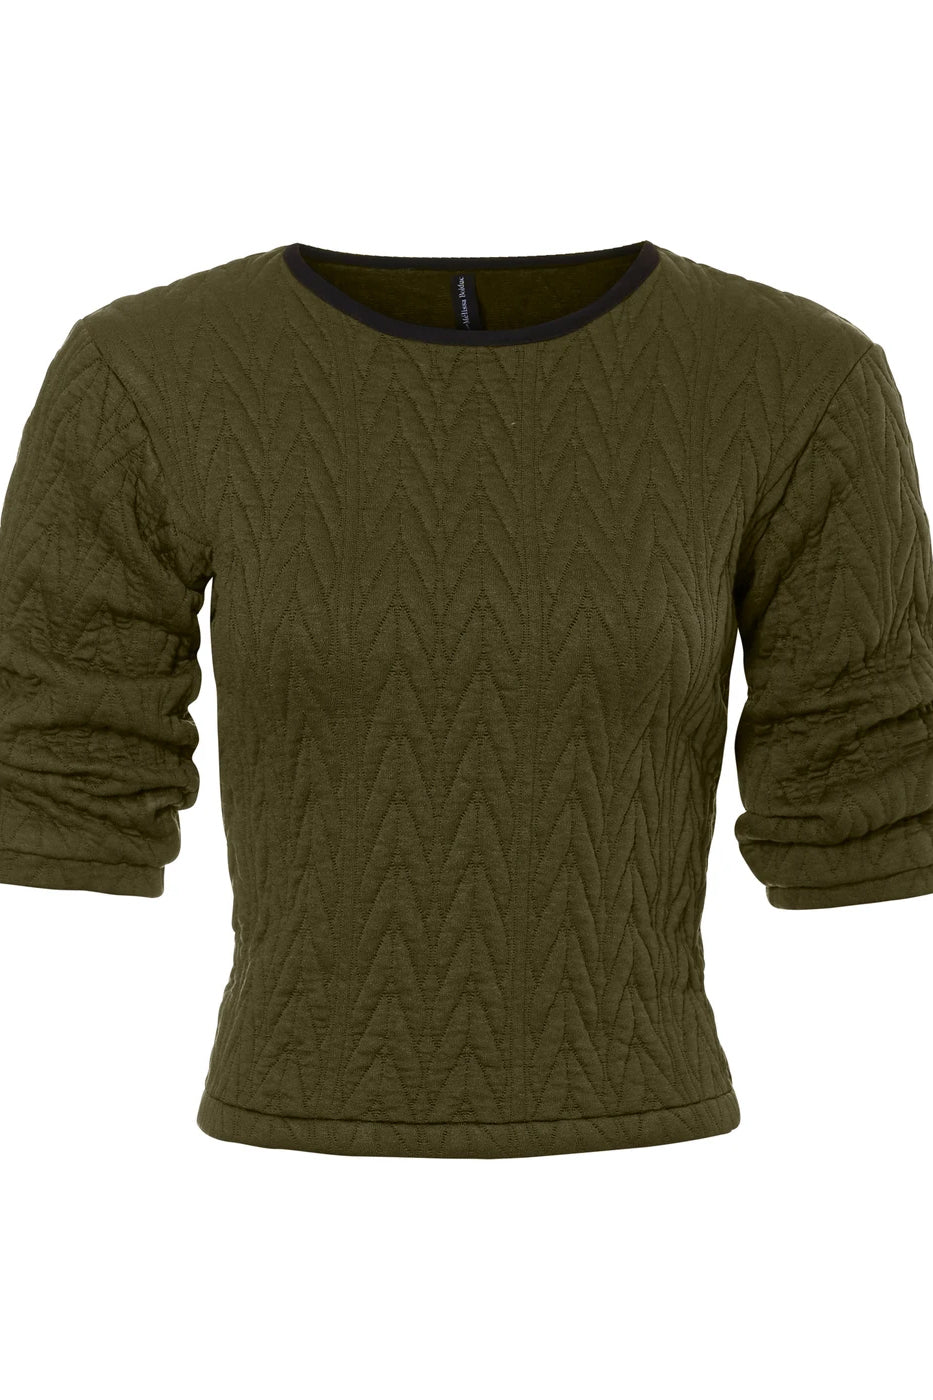 Bess Cropped Sweater